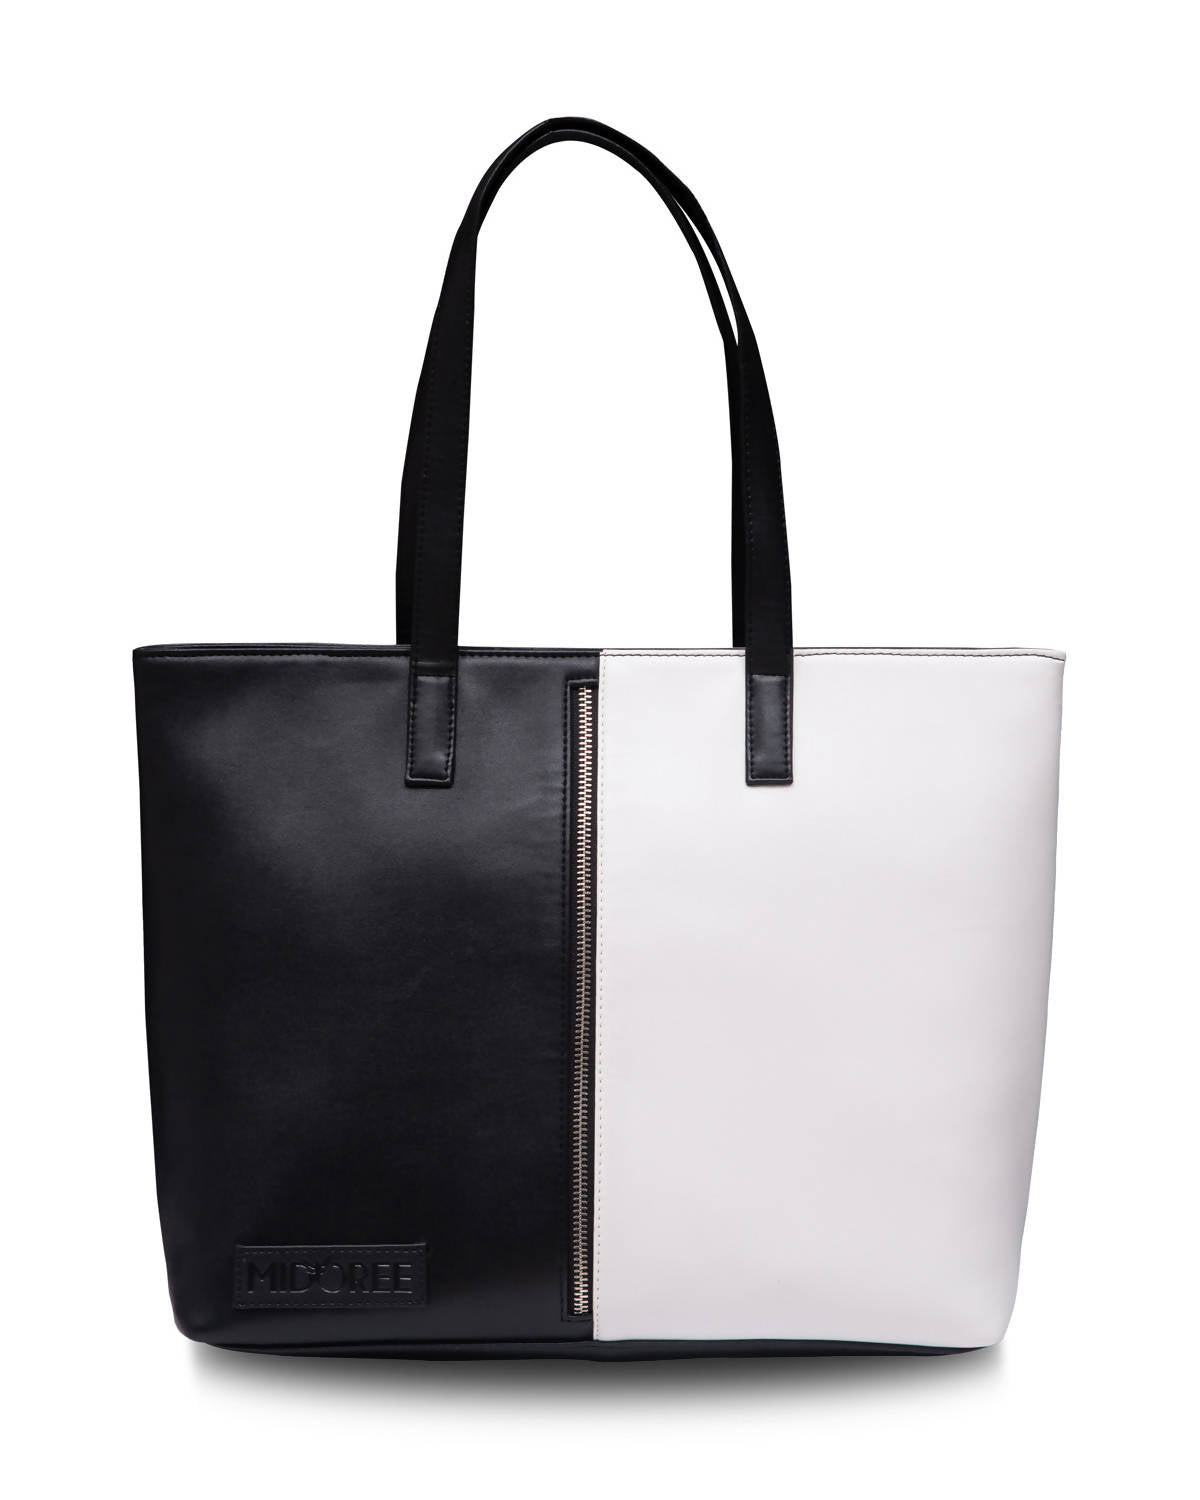 Vertical Panache Tote,Midoree, Curated Designer at Freesigners.com